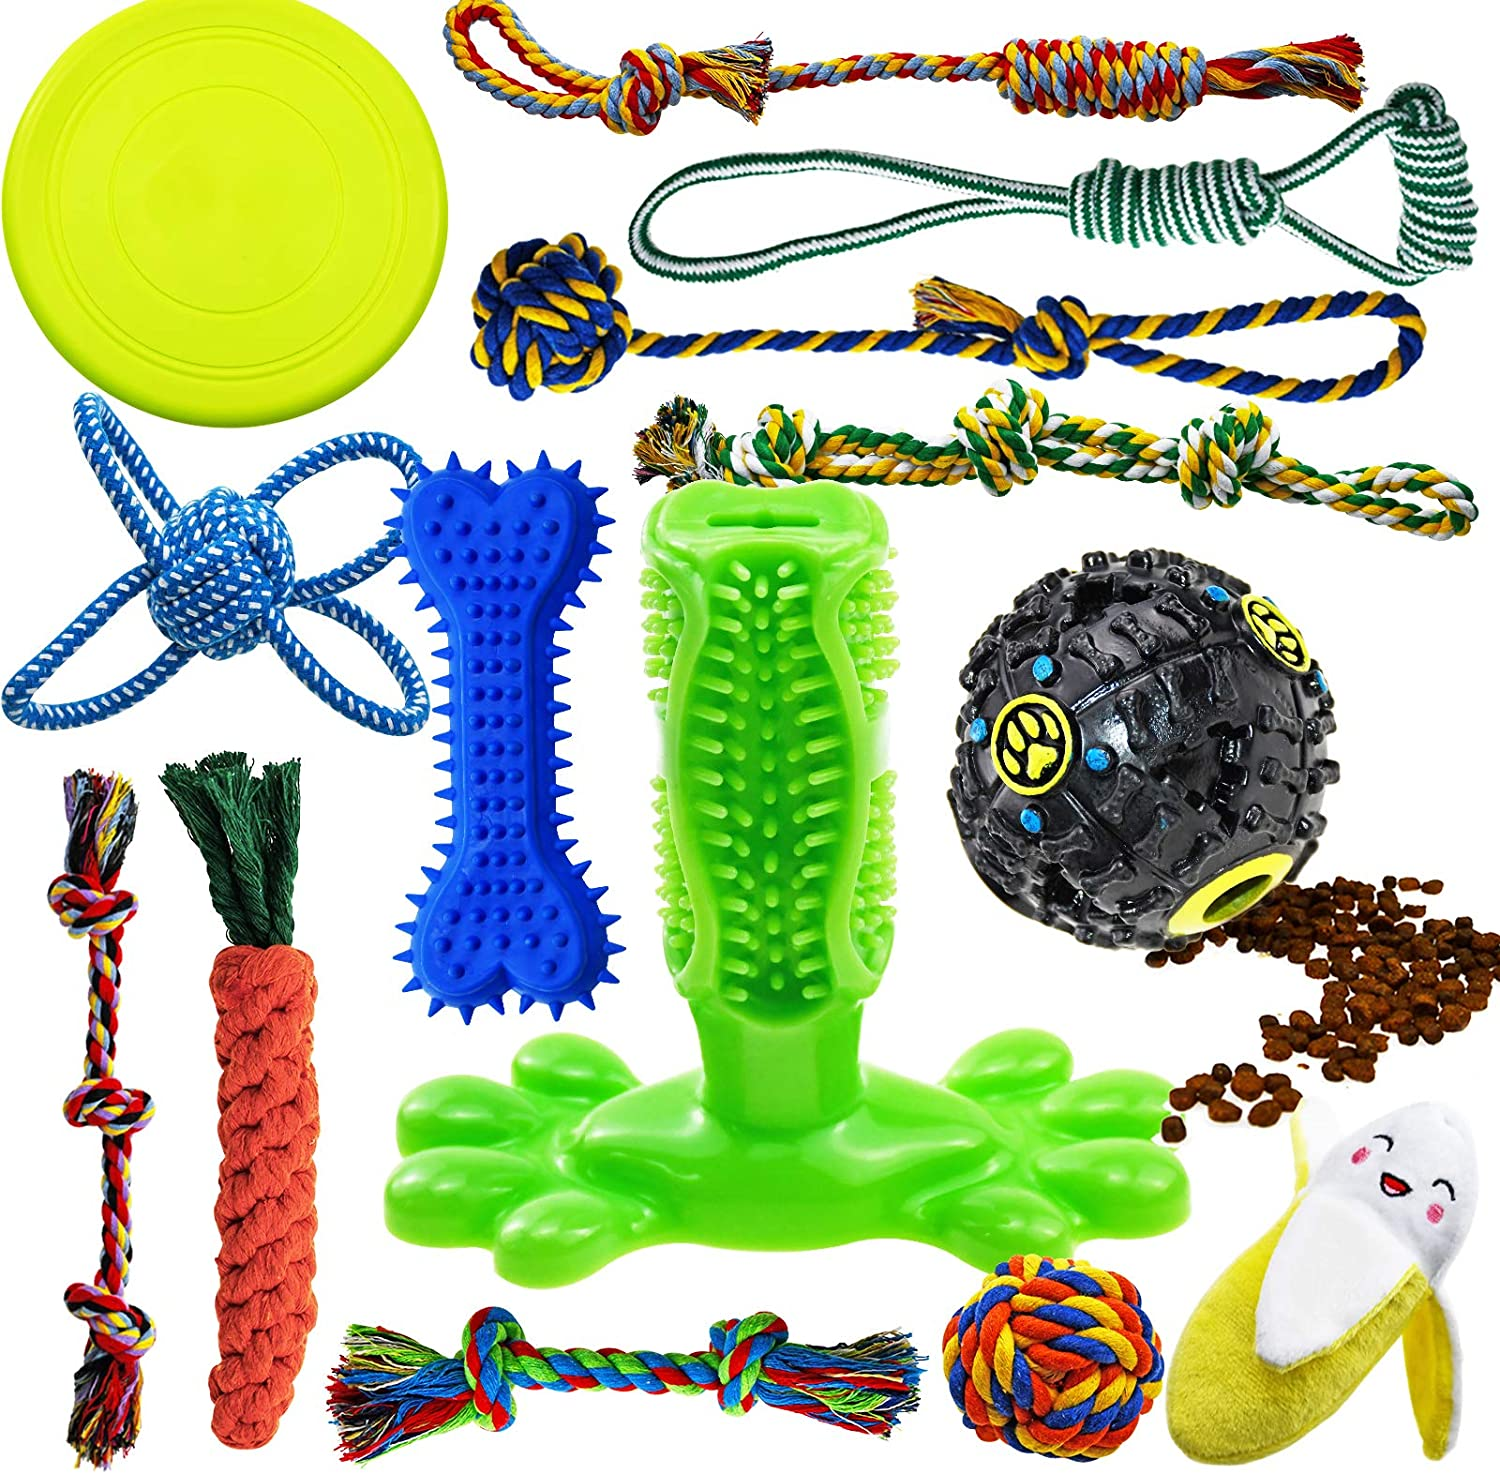 SHARLOVY Dog Chew Toys for Puppies